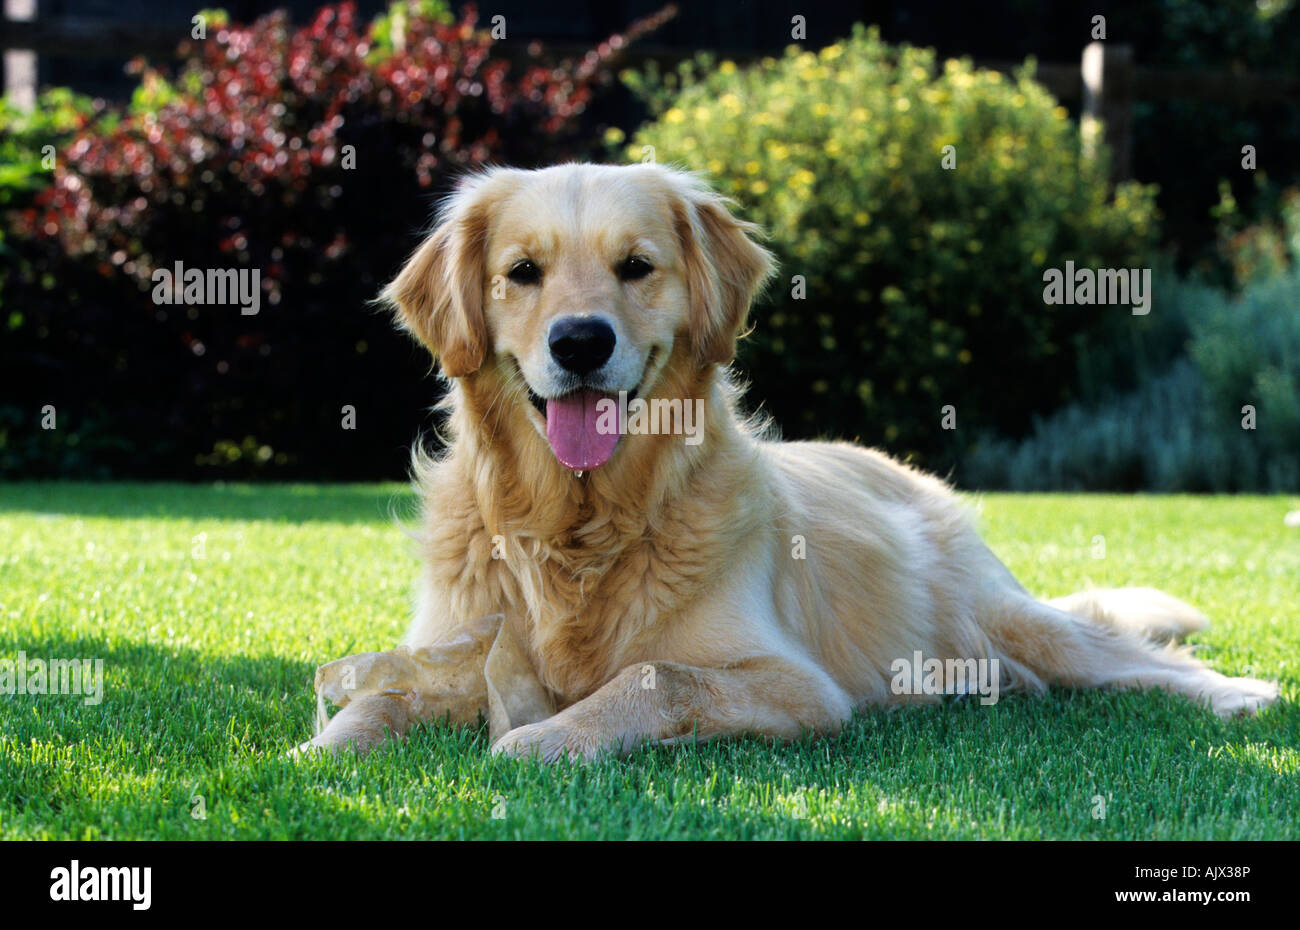 Golden Retriever, liegender Hund | Golden Retriever, lying dog - Stock Image